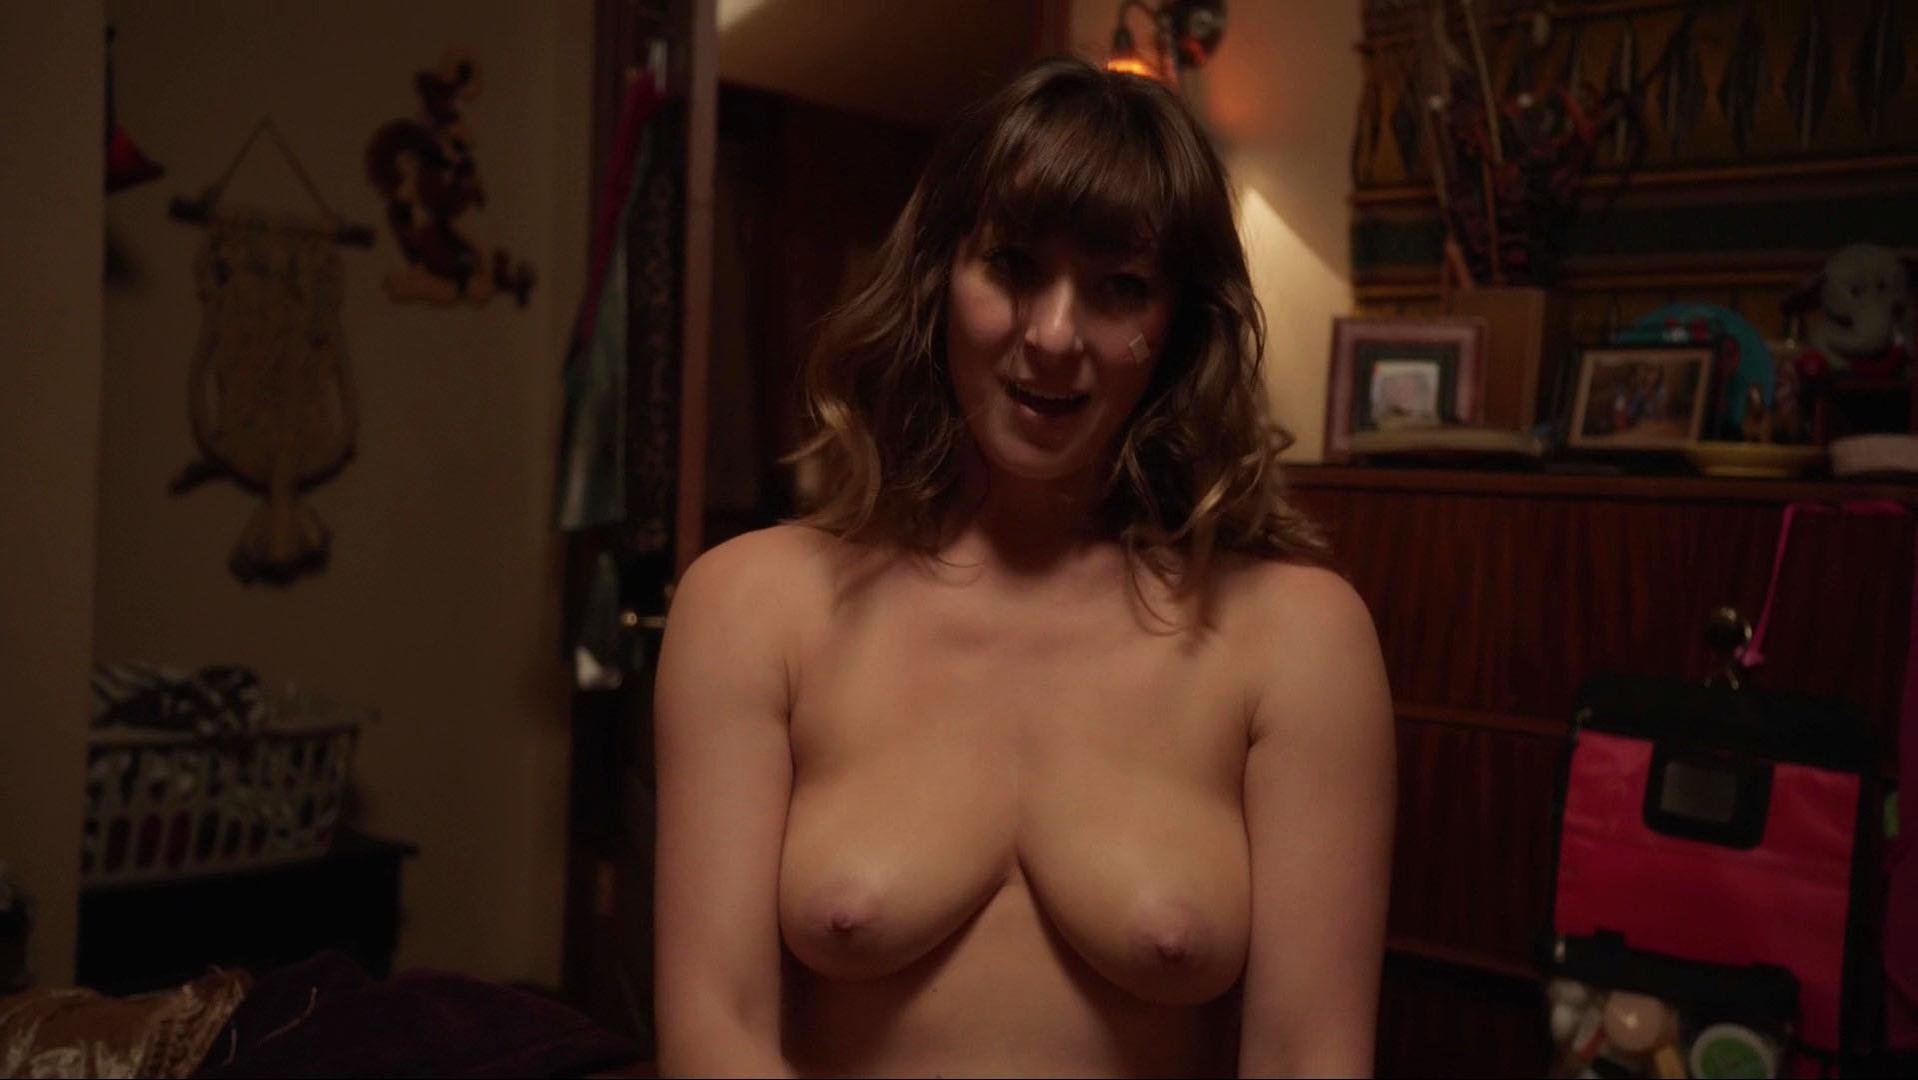 Boobs Augmented Nude Female Breast Pics Pic